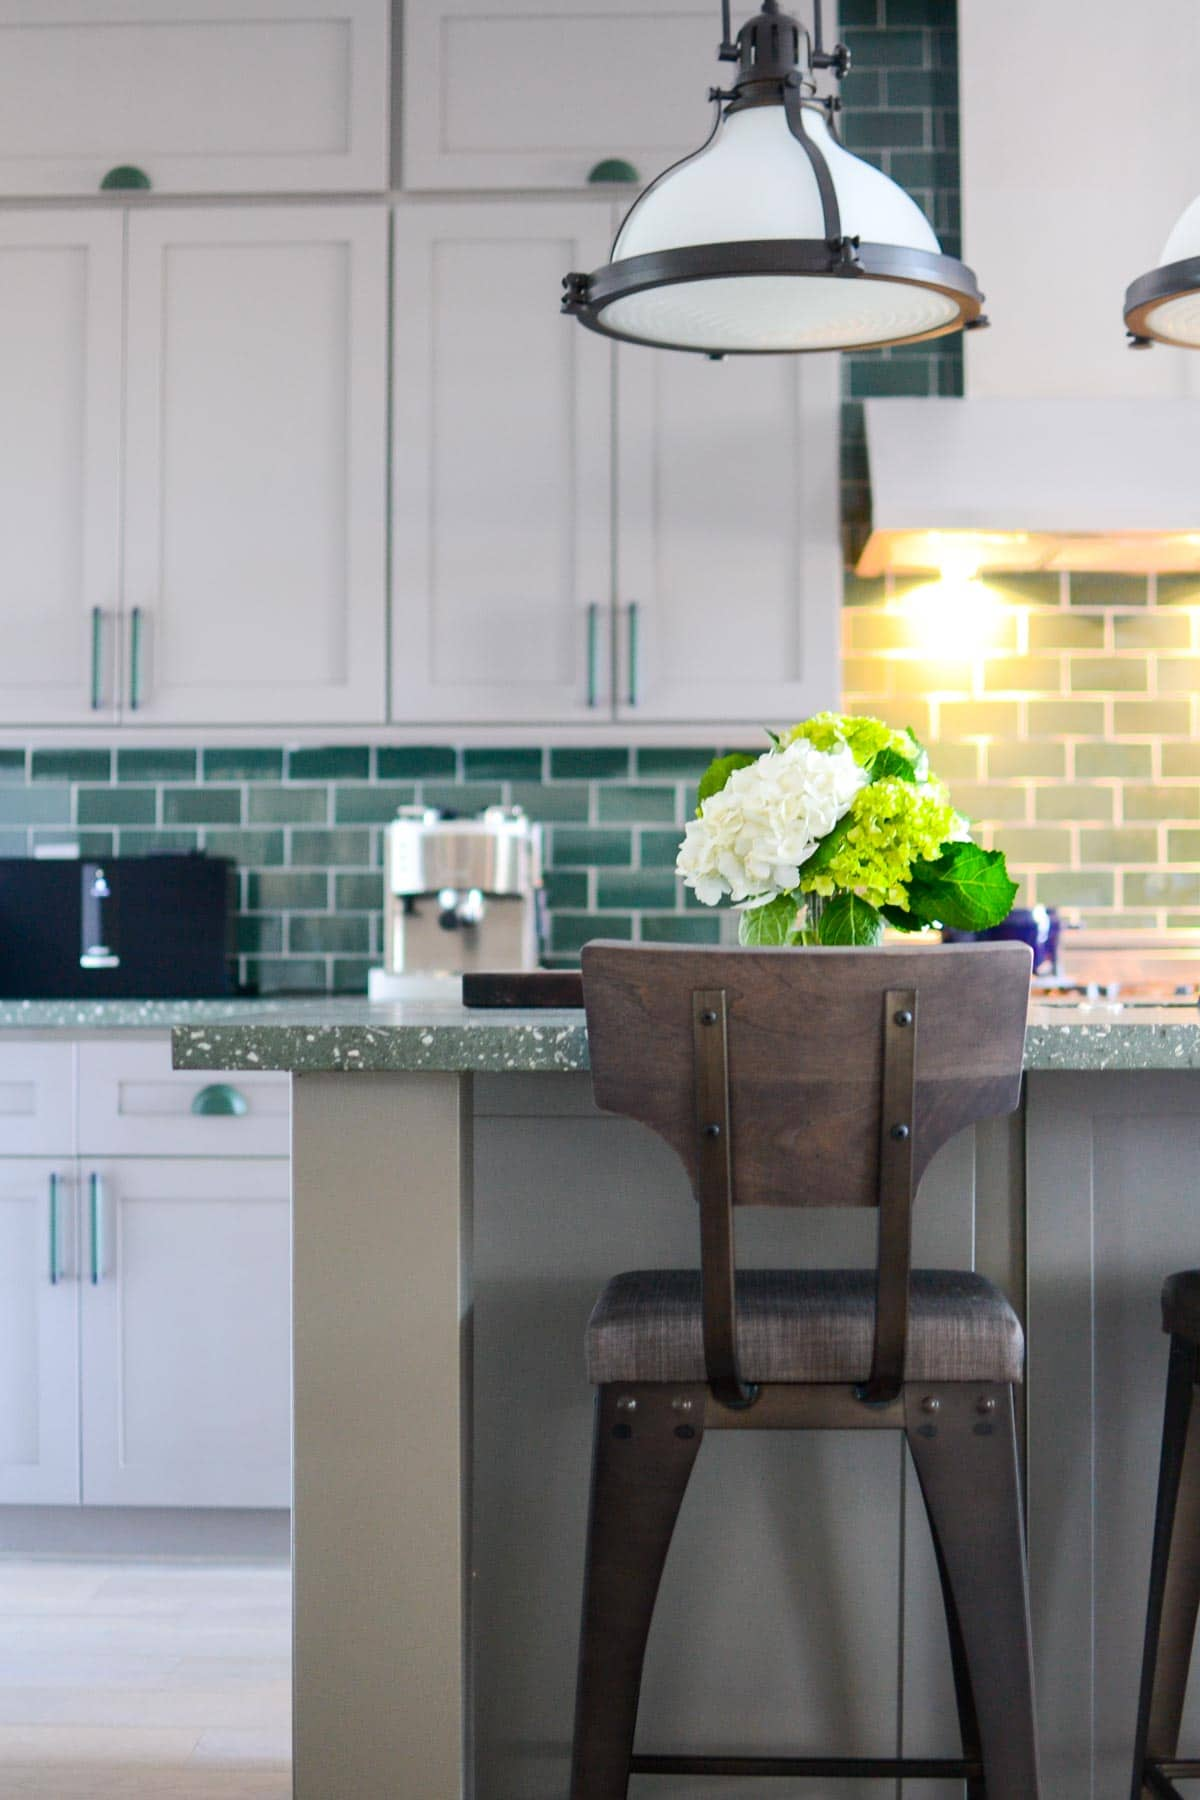 7 Tips for decorating a GREEN kitchen: rustic touches in furniture helps ground the green throughout.